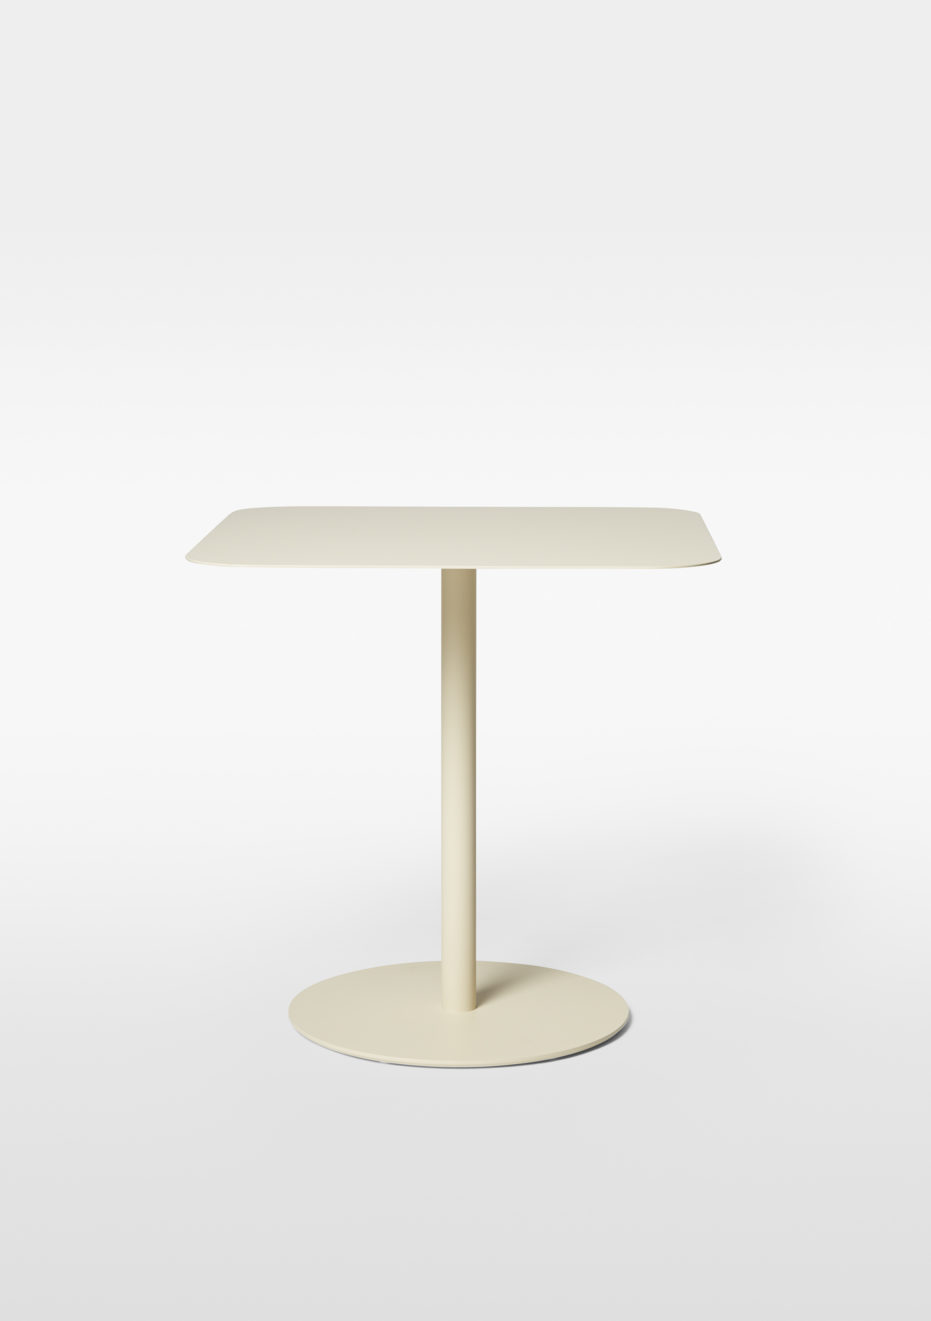 Odette Dining Table / MASSPRODUCTIONS Product Link SPEC SHEET - Inquire within - info@smlpond.com